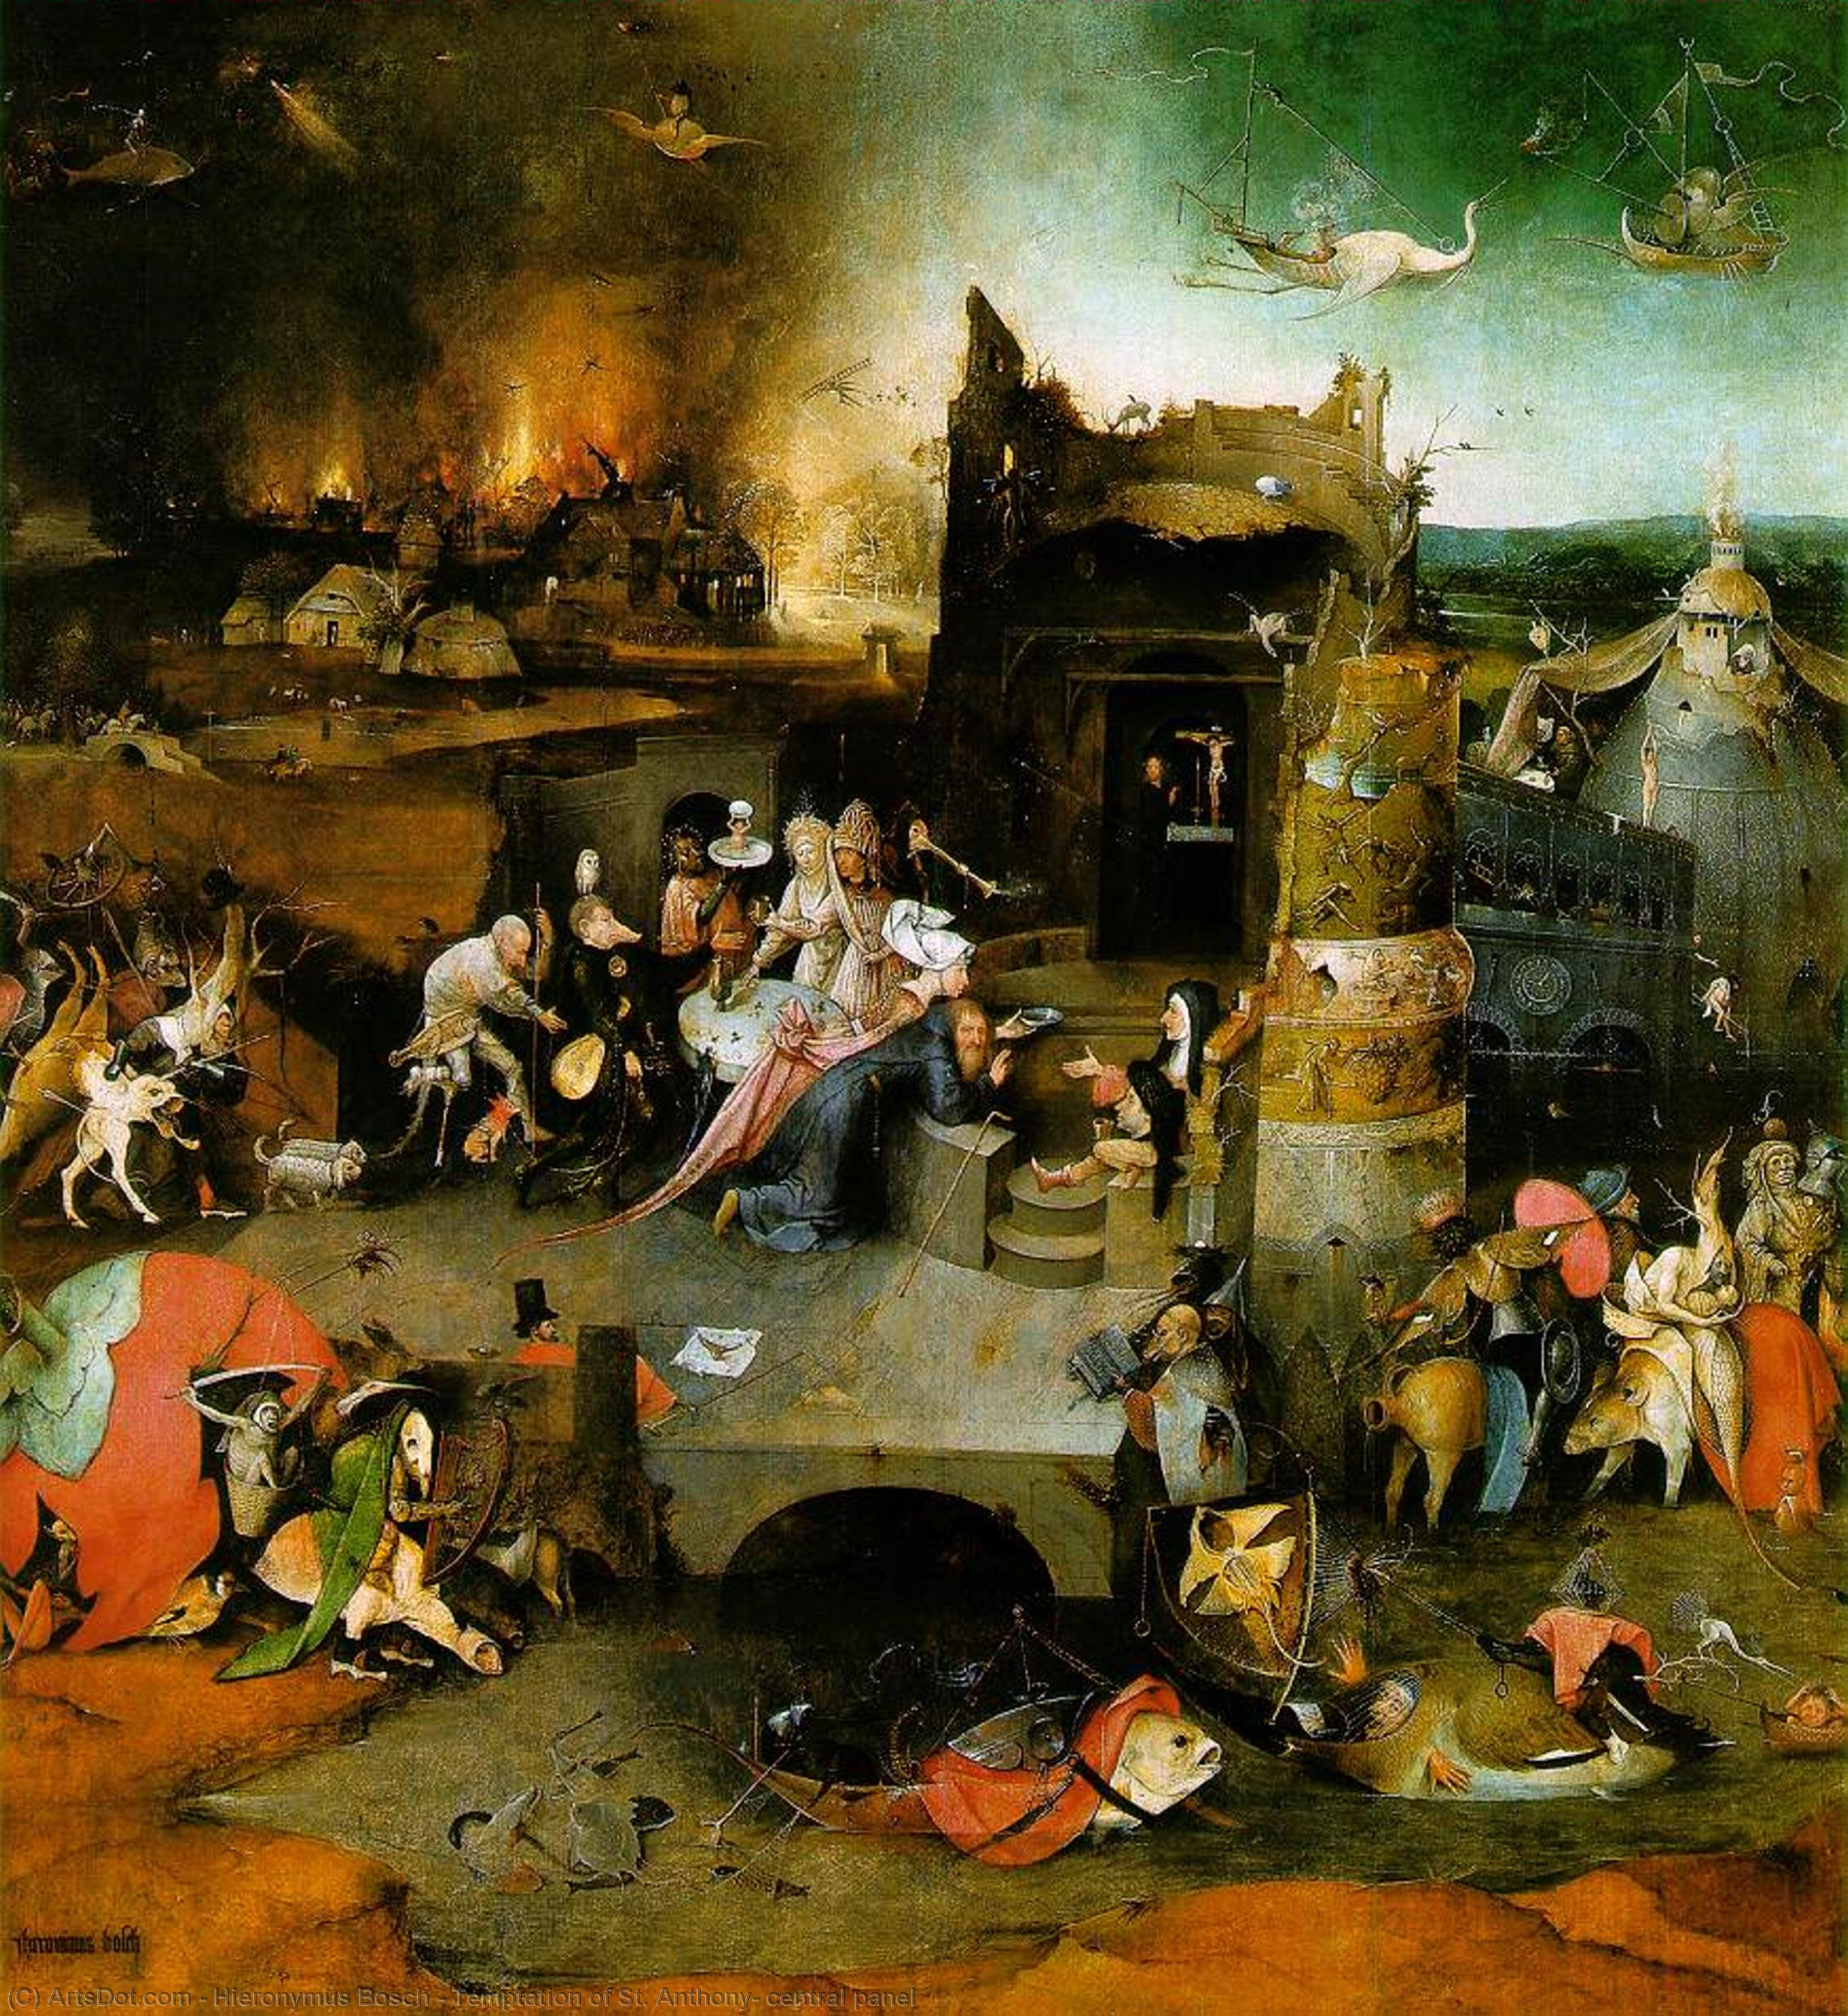 Wikioo.org - The Encyclopedia of Fine Arts - Painting, Artwork by Hieronymus Bosch - Temptation of St. Anthony, central panel